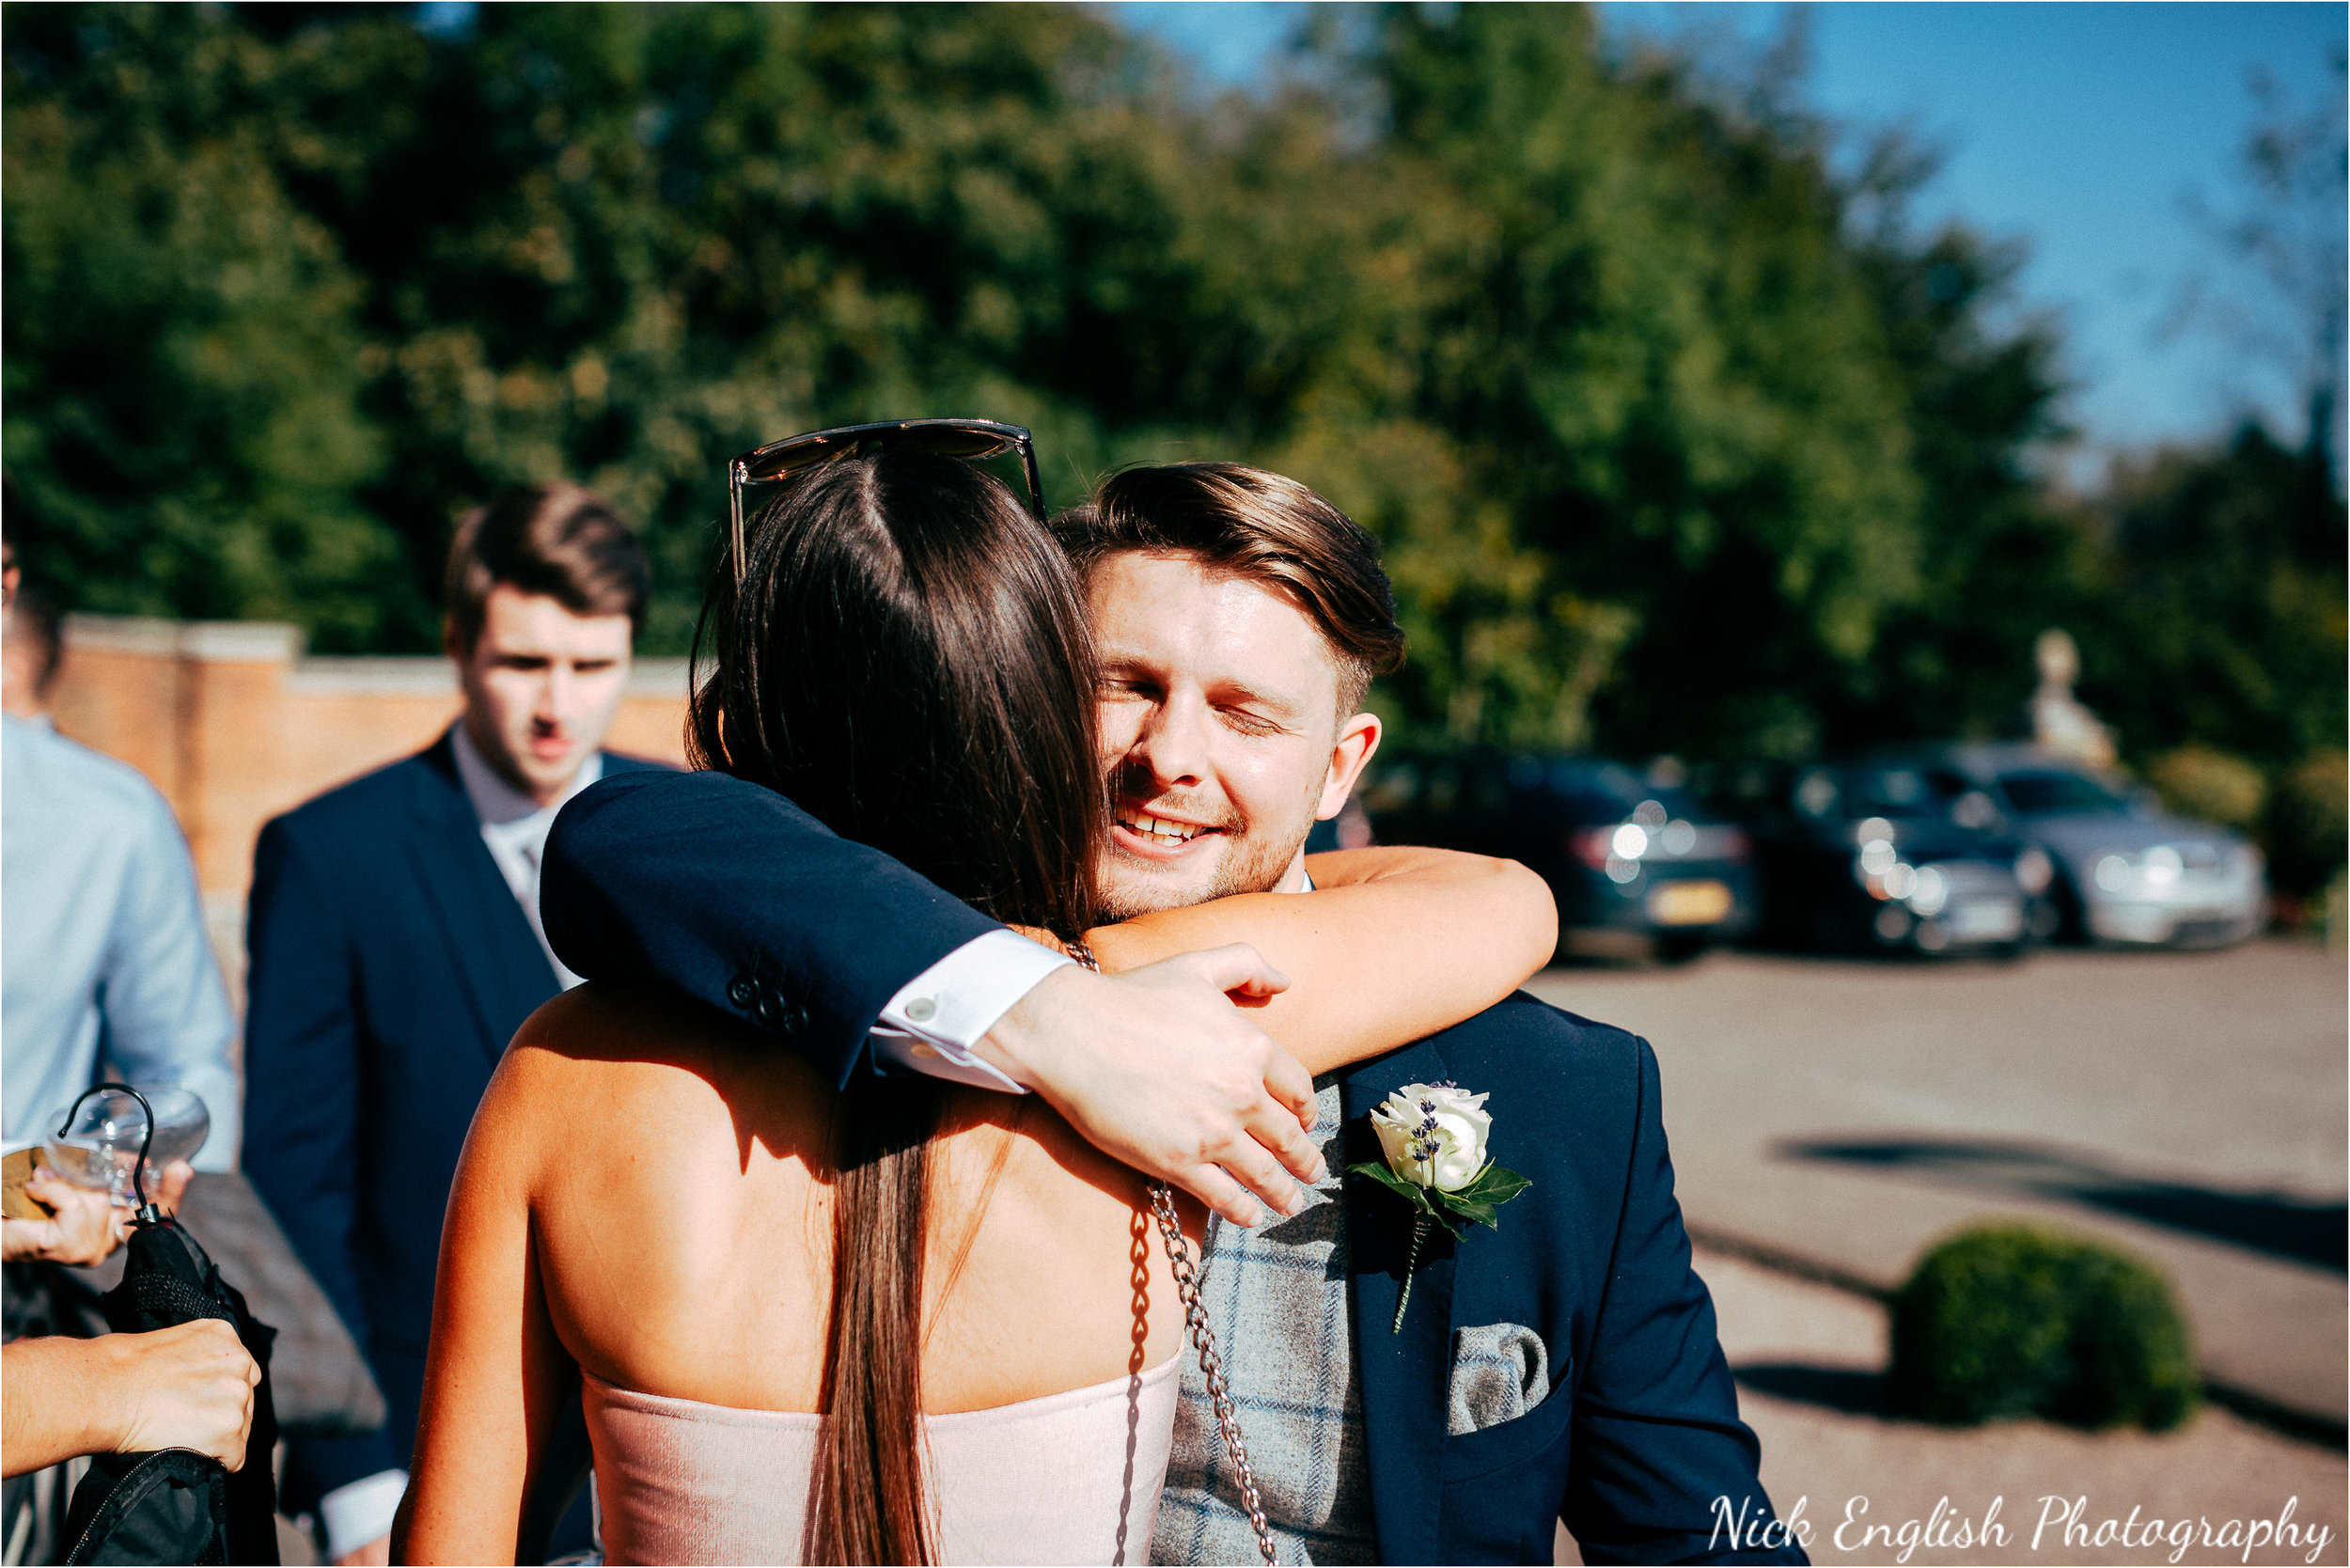 Eaves_Hall_Wedding_Photographs_Nick_English_Photography-148.jpg